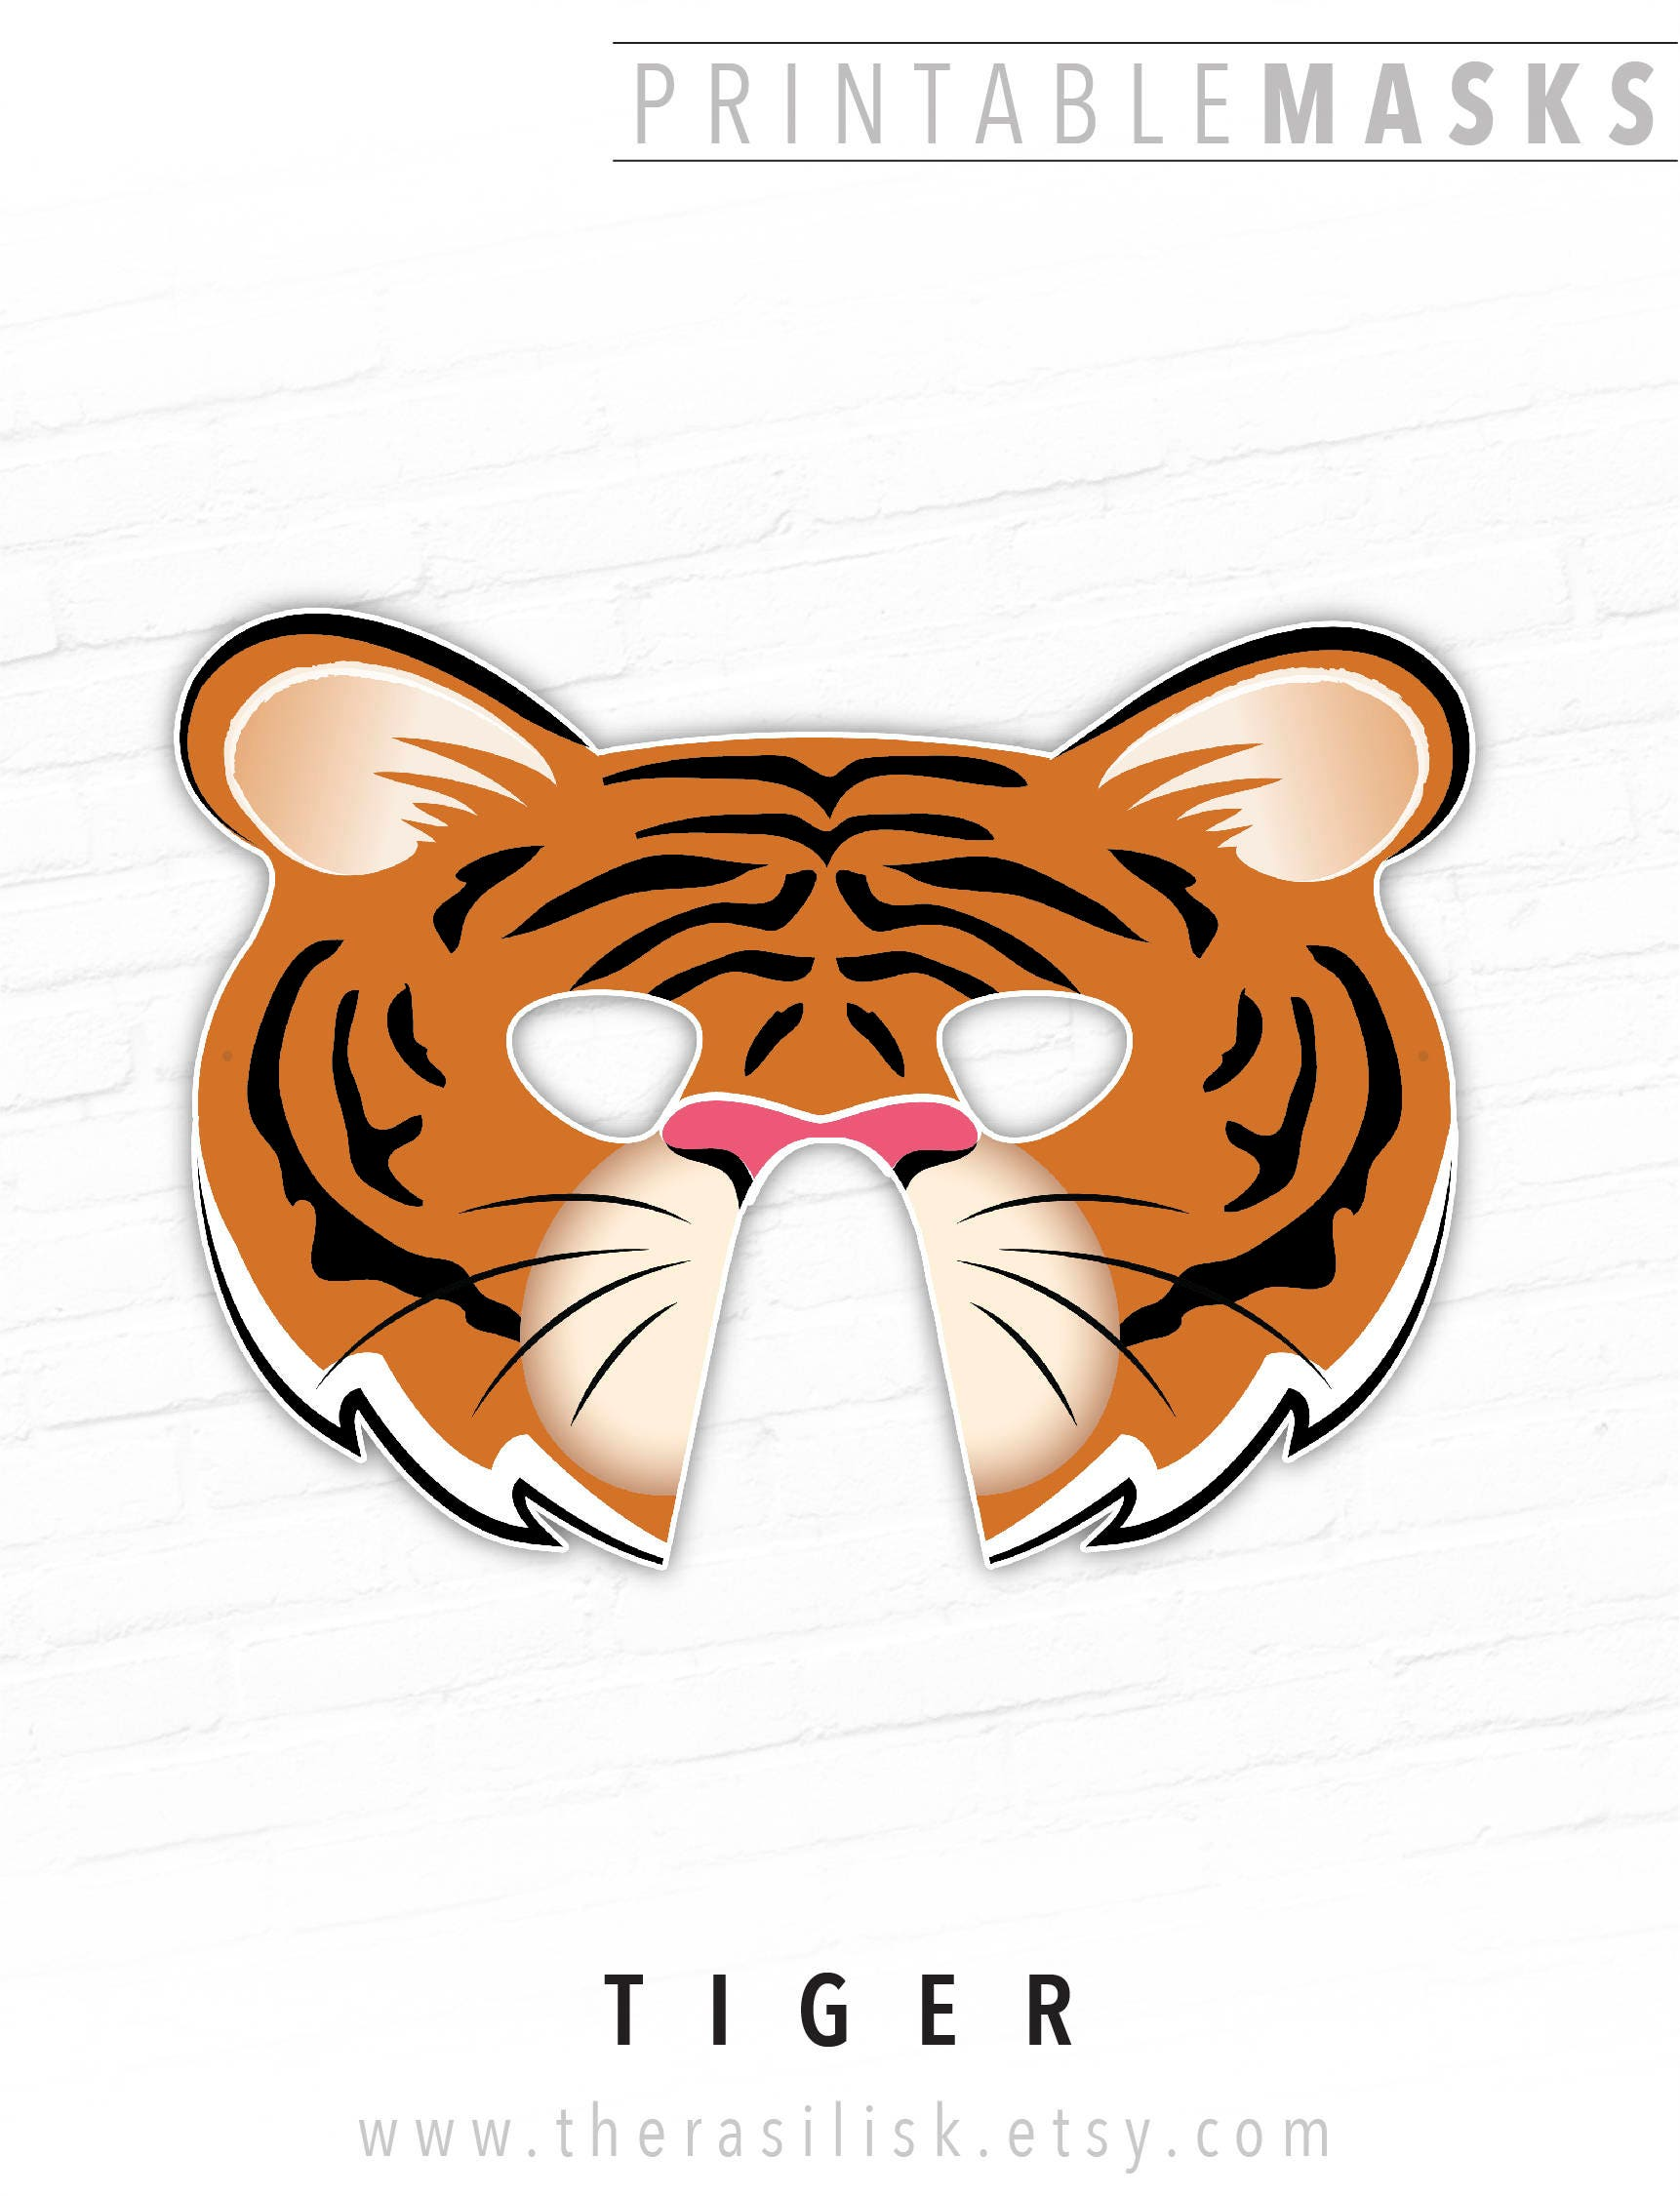 This is a graphic of Smart Tiger Mask Printable